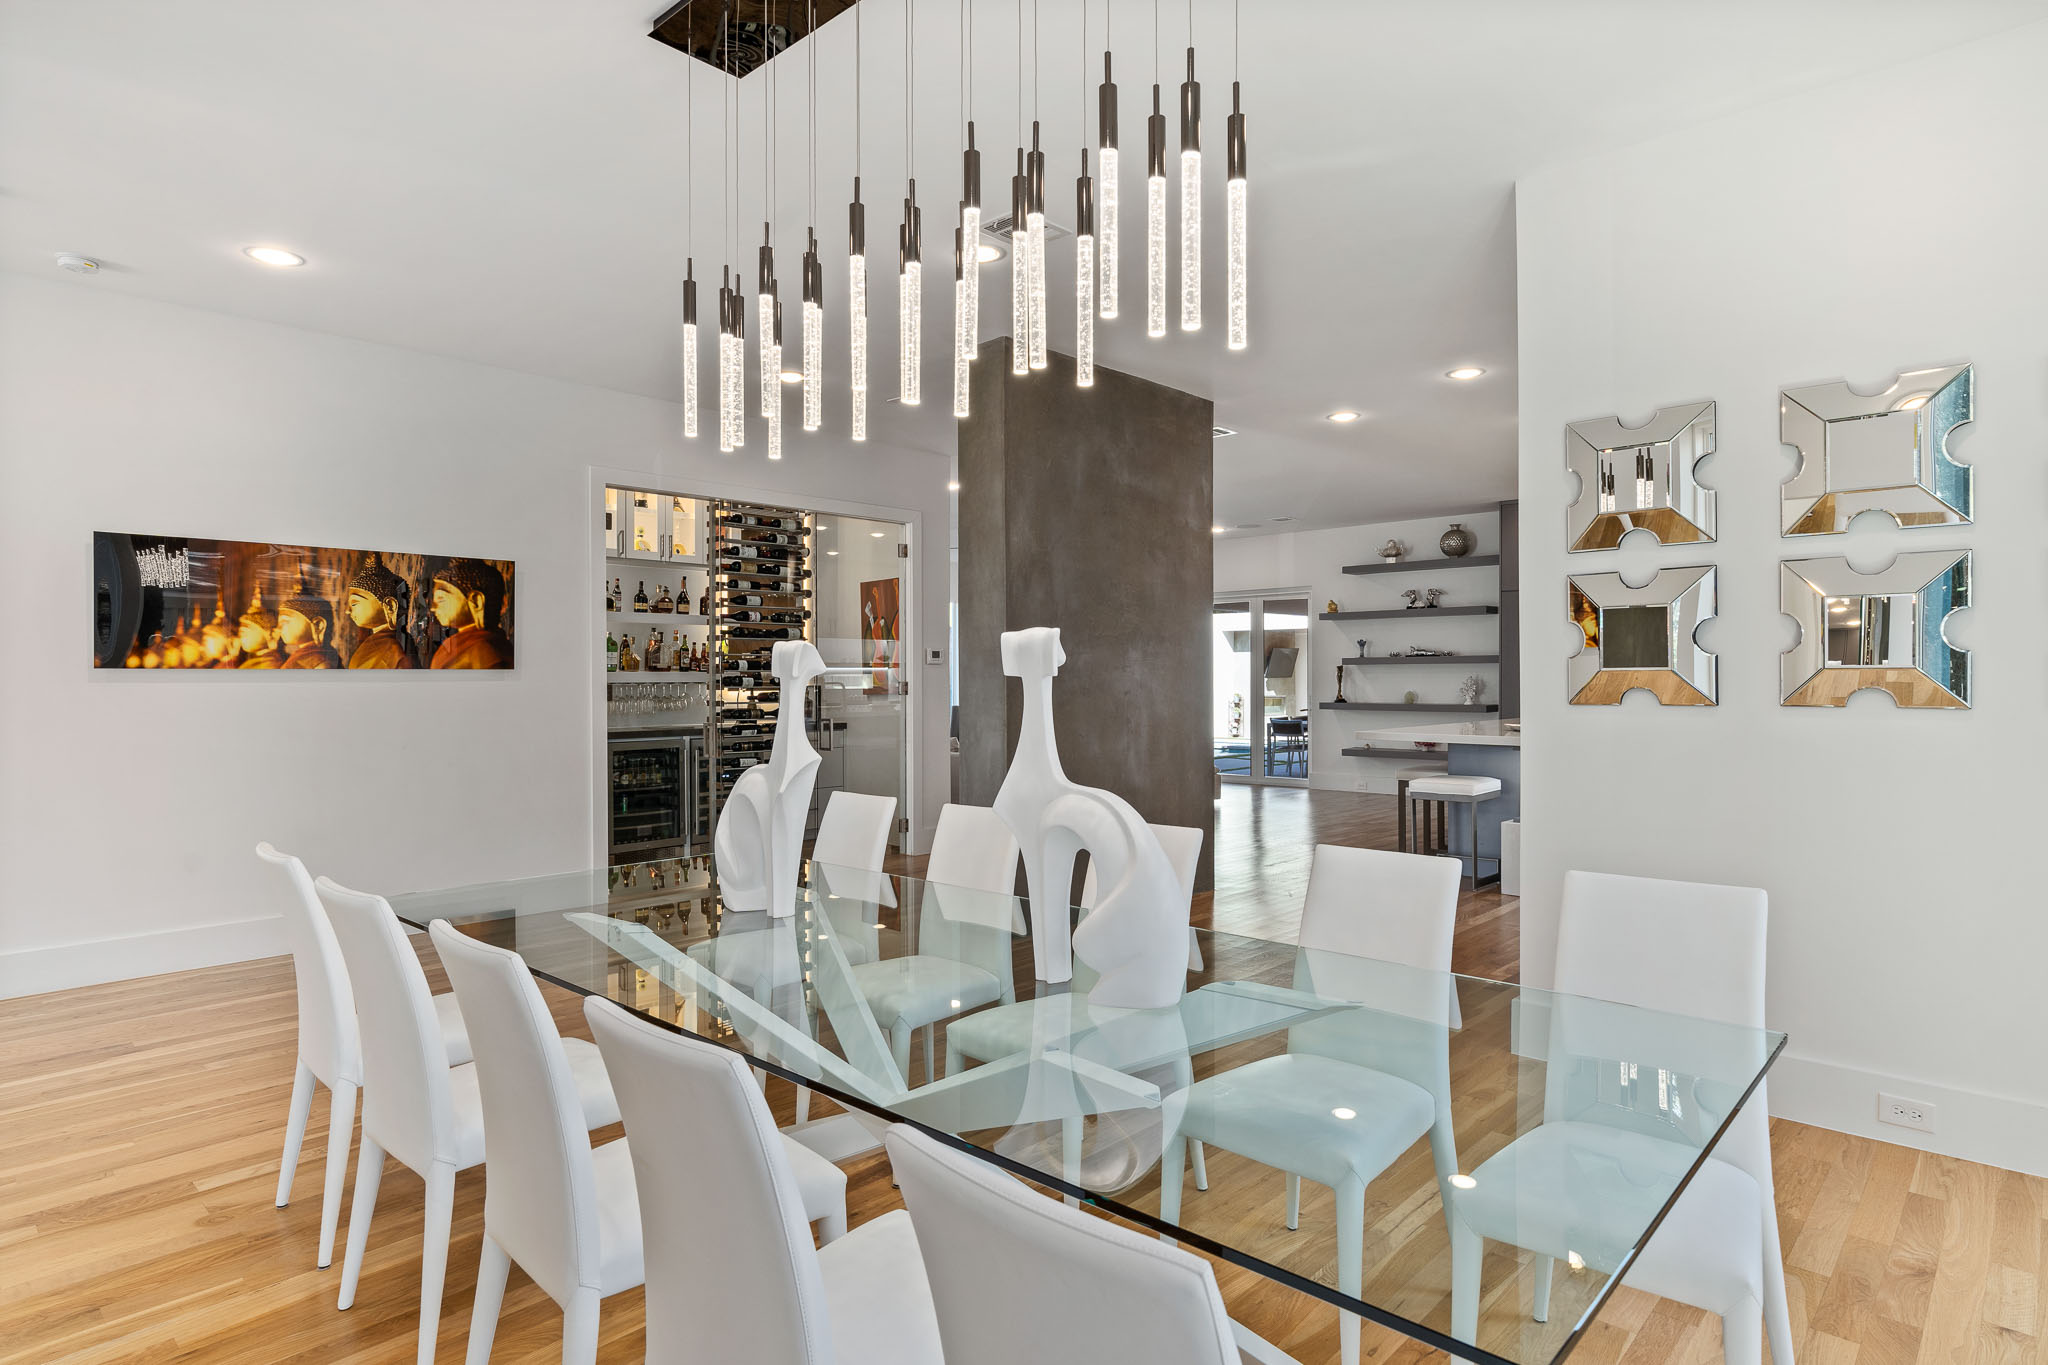 Bright white and modern dining room in Dallas home for sale